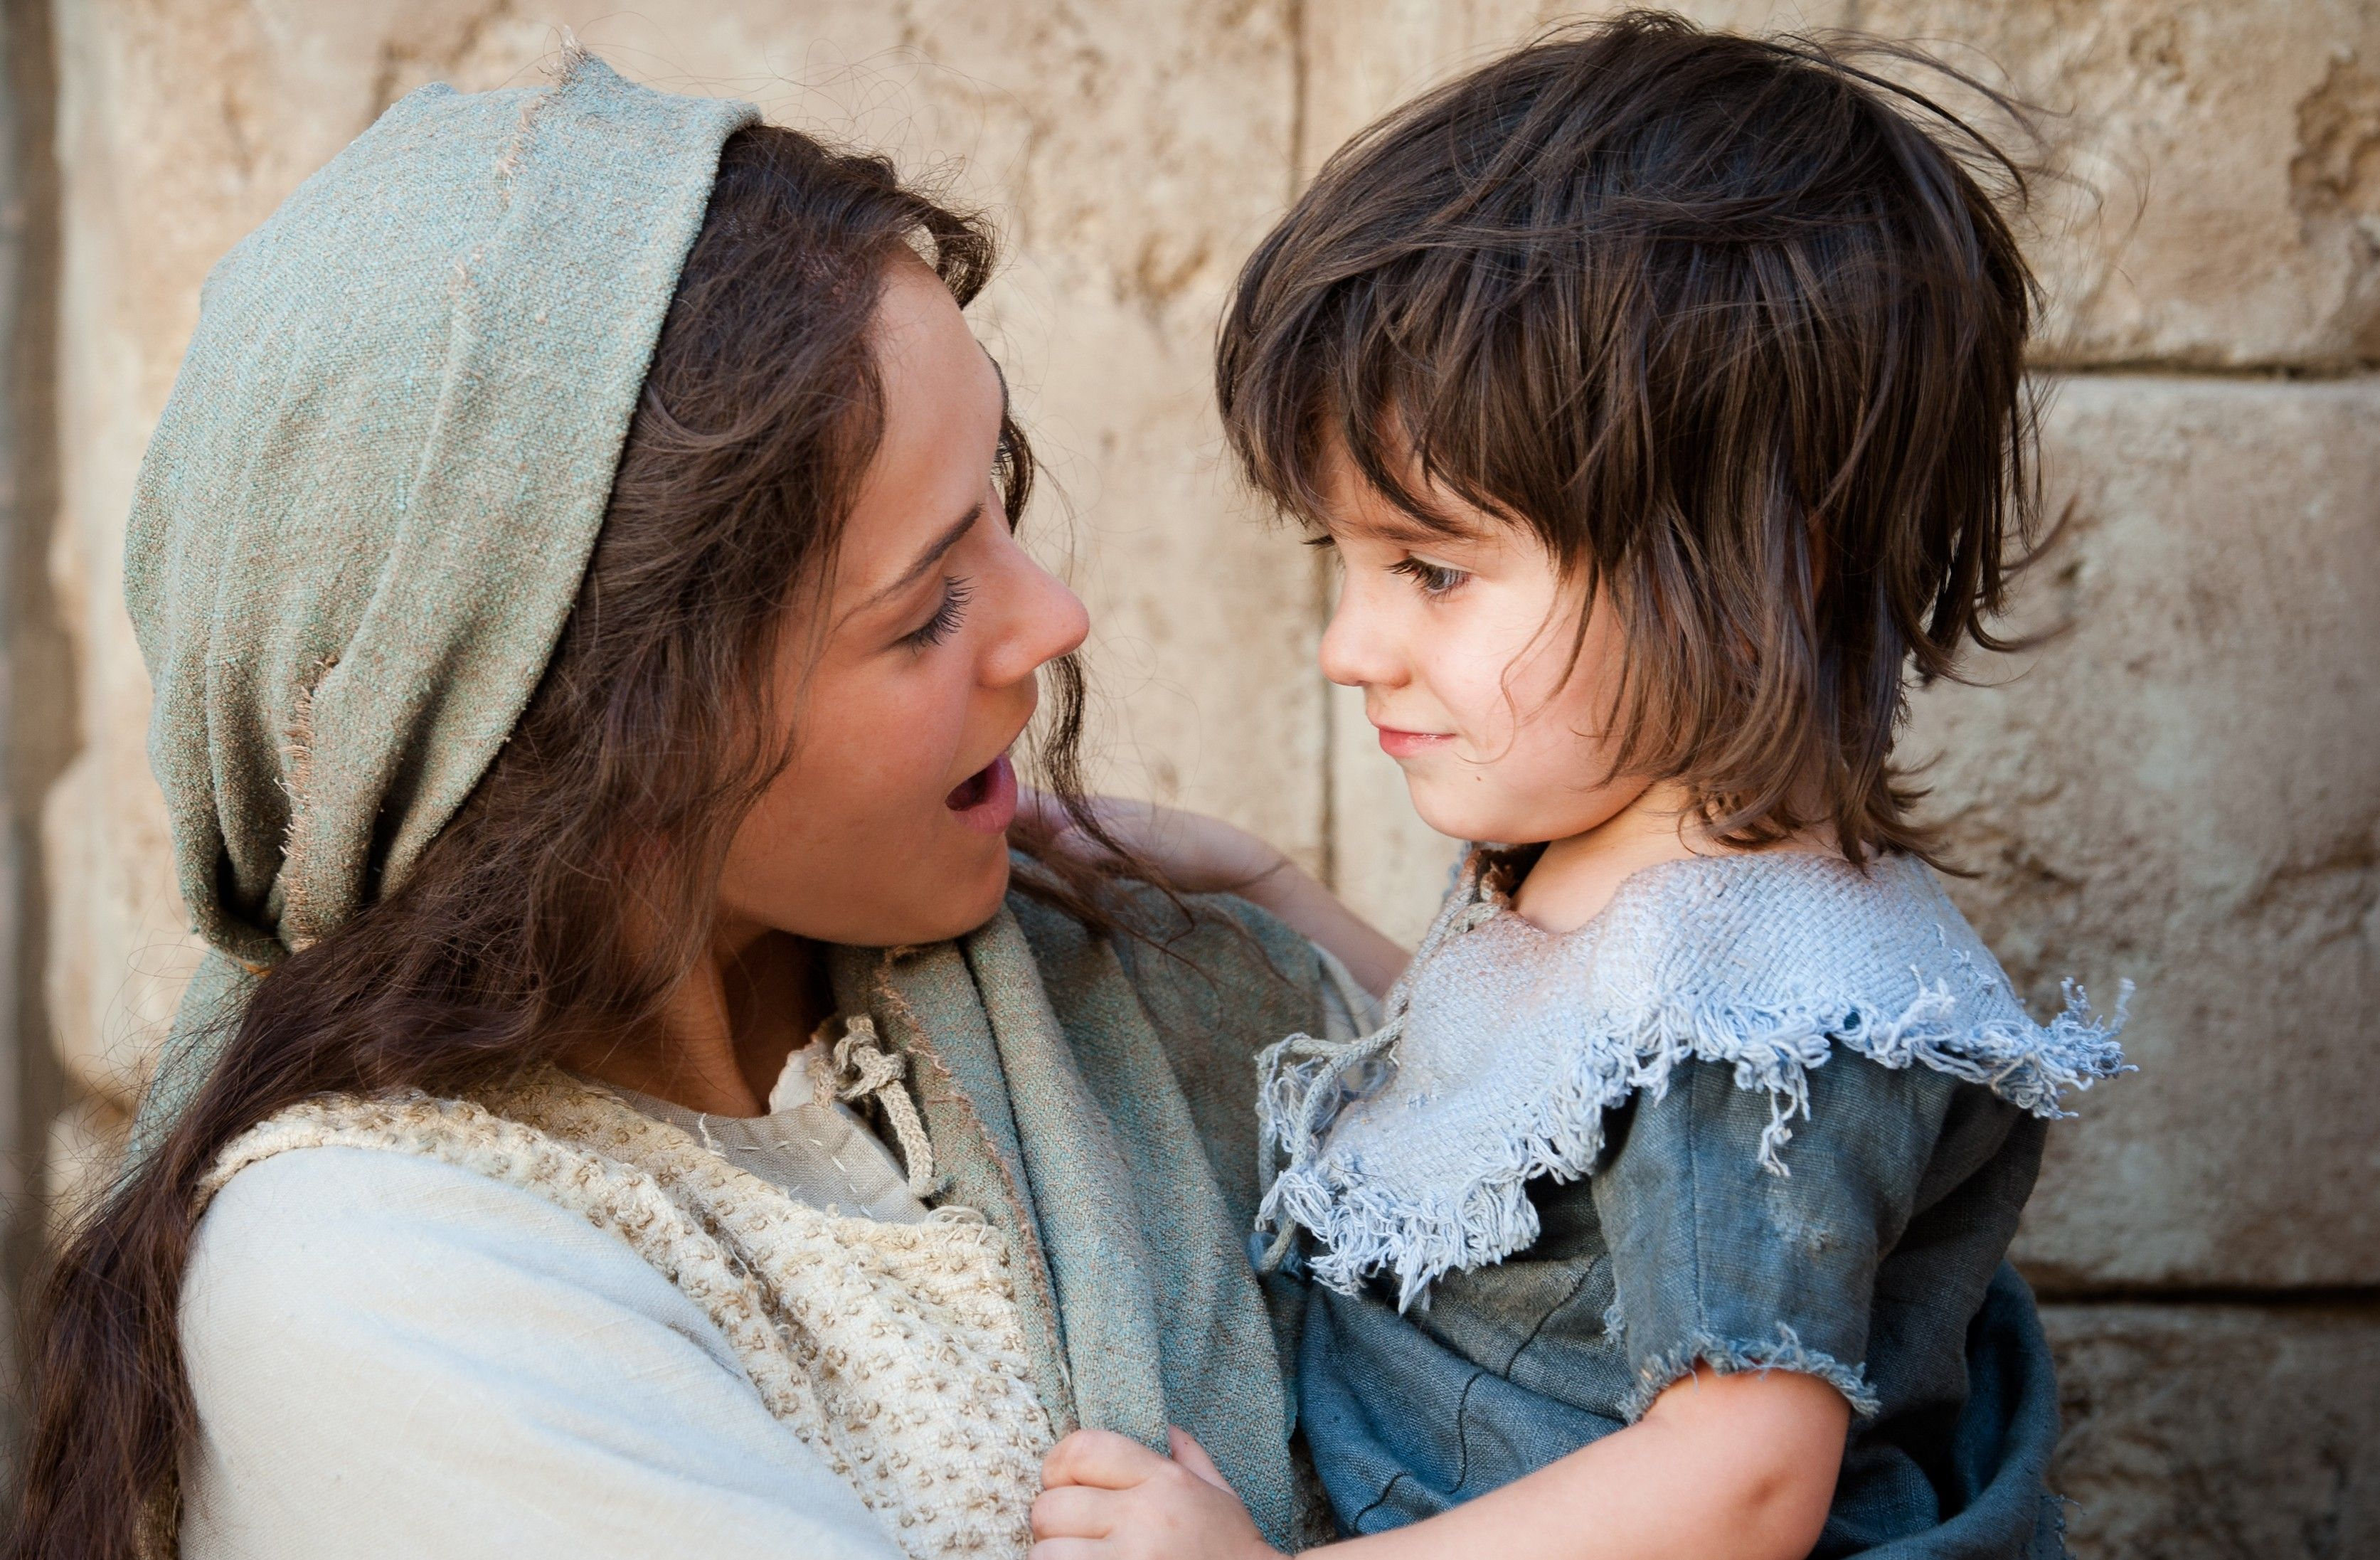 Mary and the young Christ child at the time the Wise Men brought gifts.